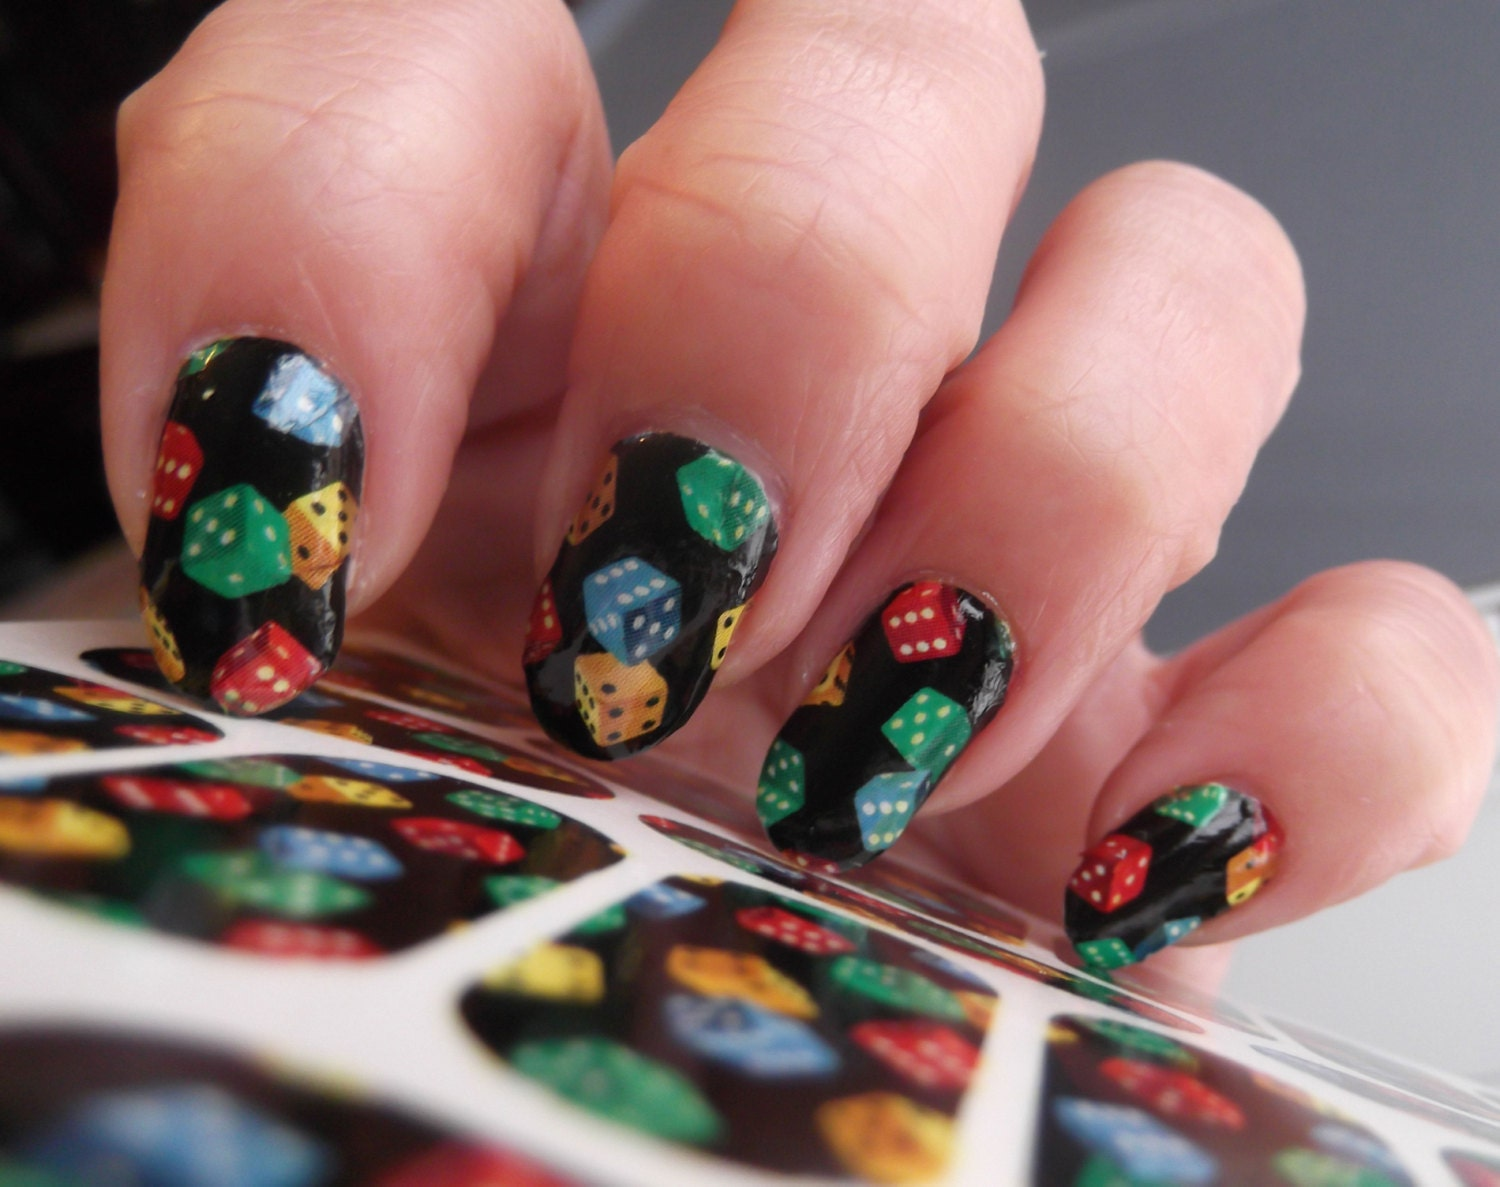 18 Dice Nail Art Decal Wraps Tiny Colorful Pattern On Black Etsy